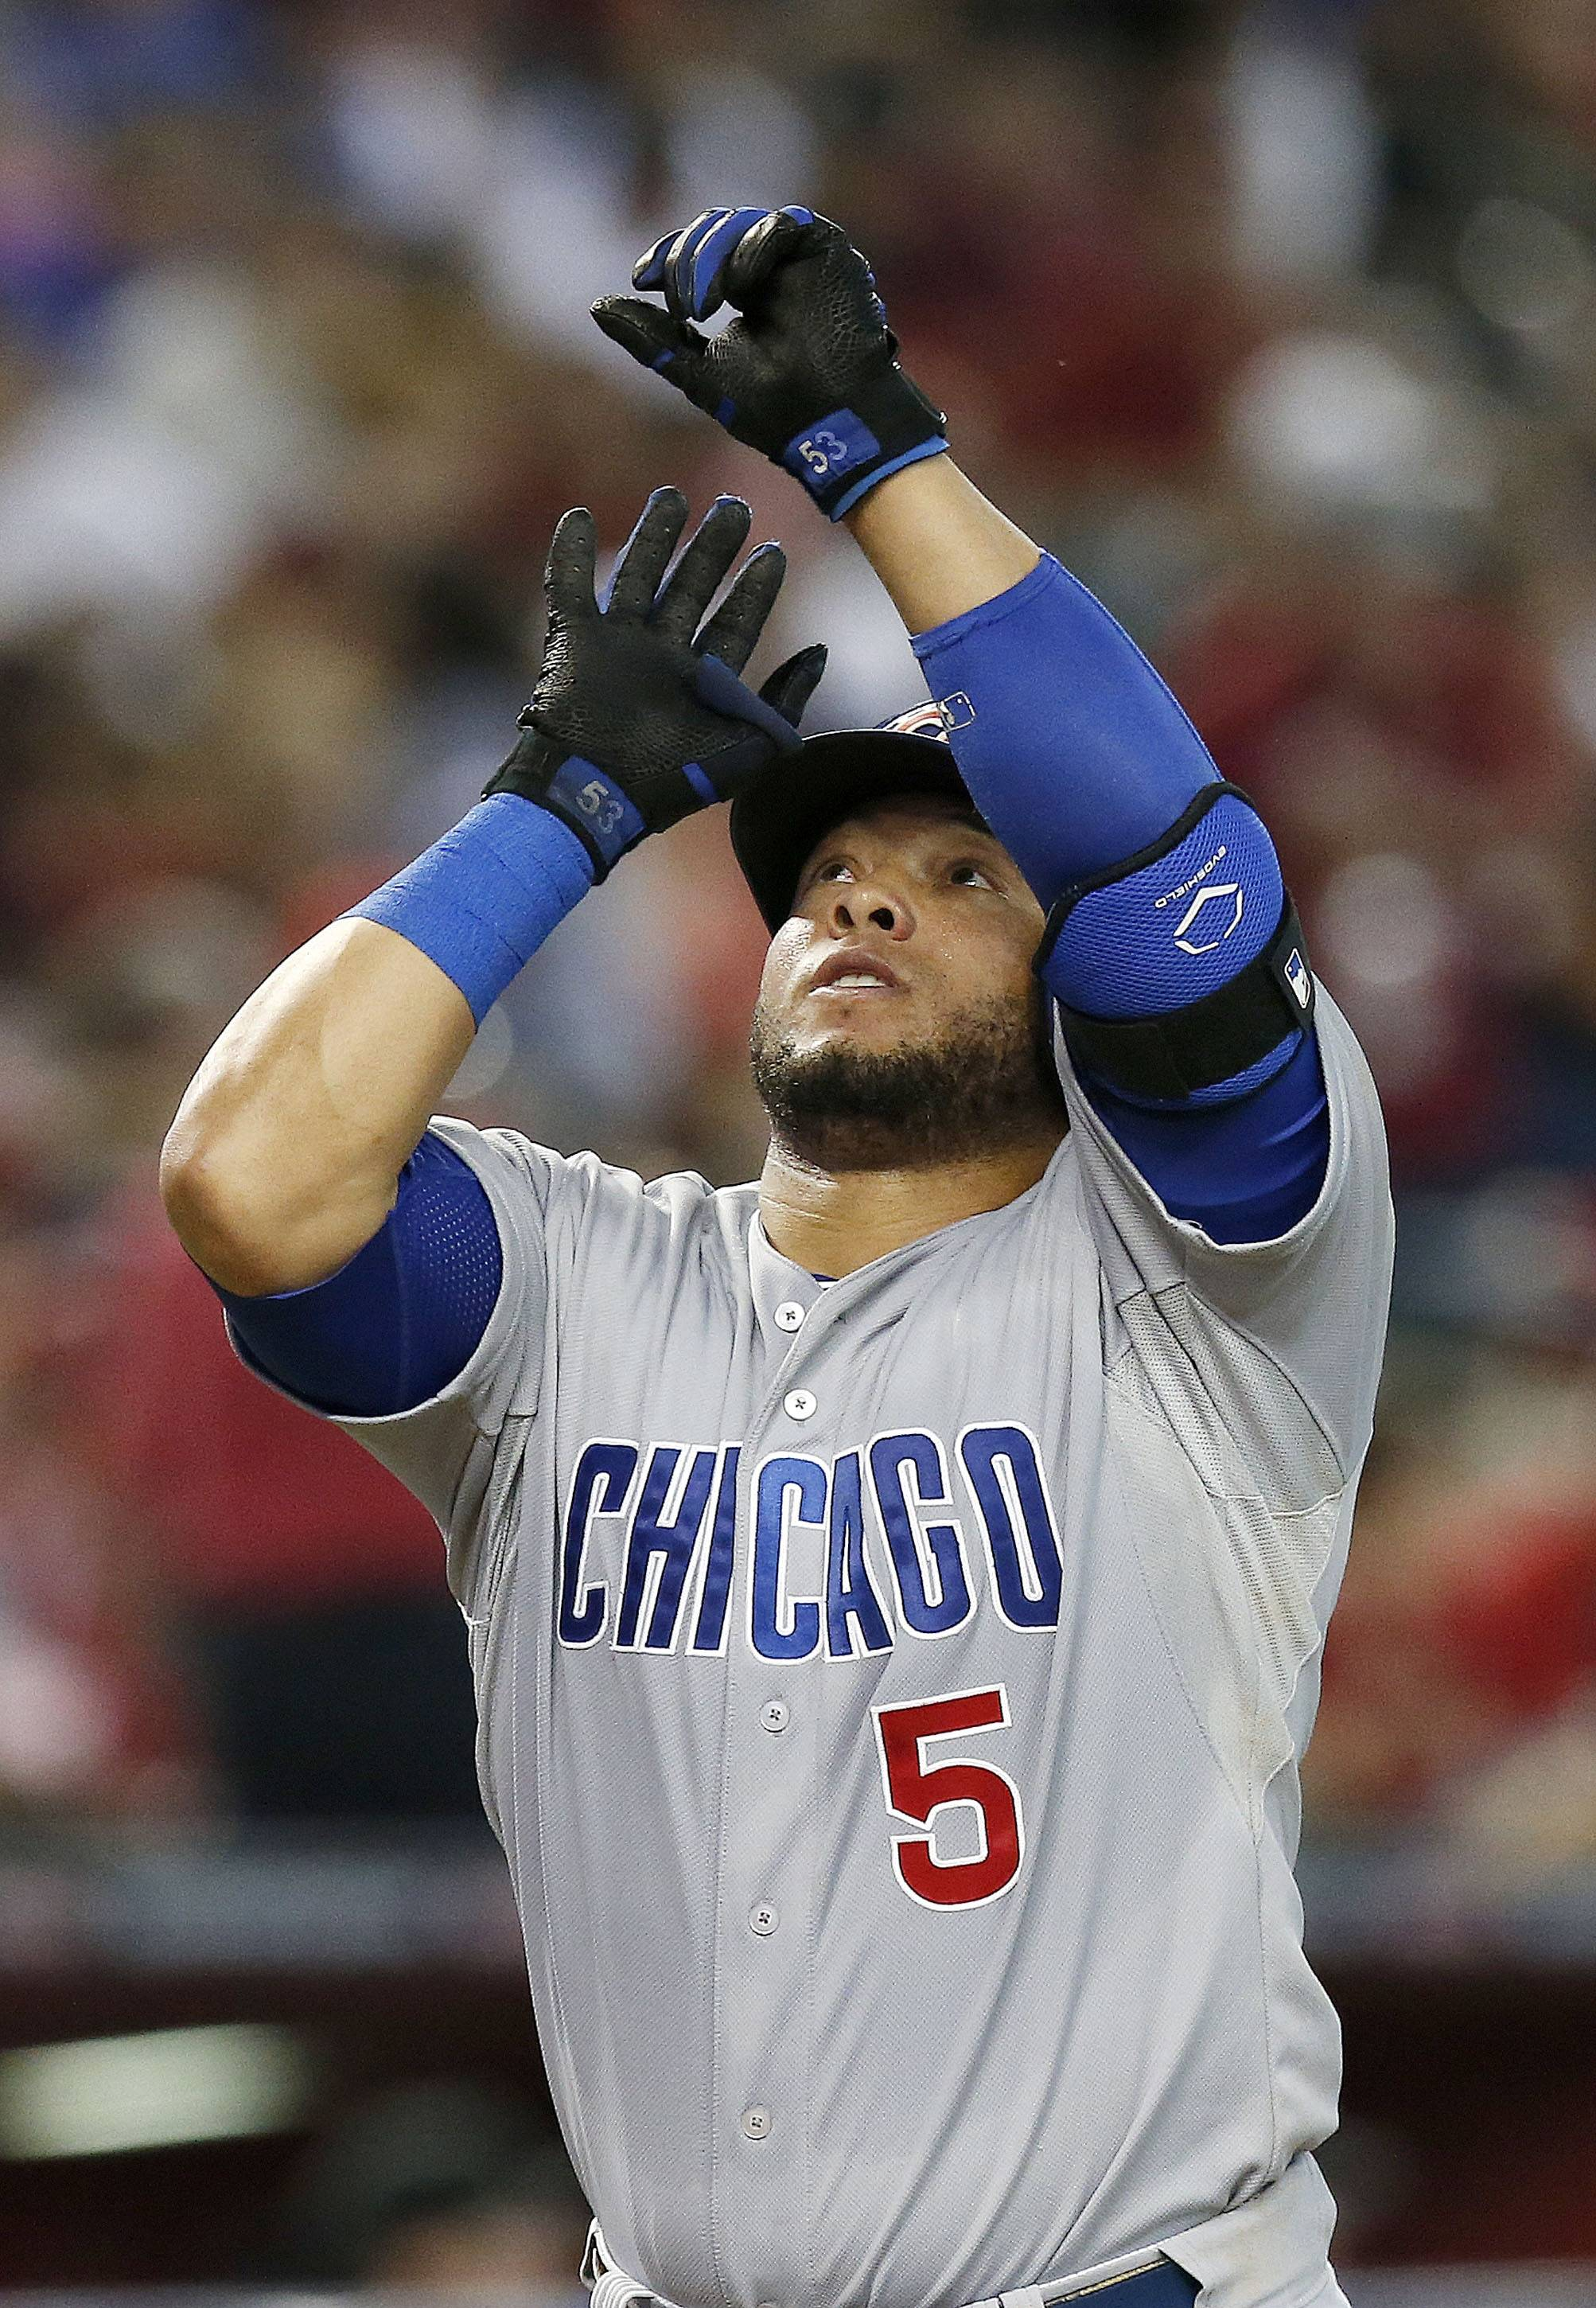 The Cubs' Welington Castillo celebrates his home run against the Arizona Diamondbacks during the fourth inning Saturday's game in Phoenix. The Cubs lost 9-3.